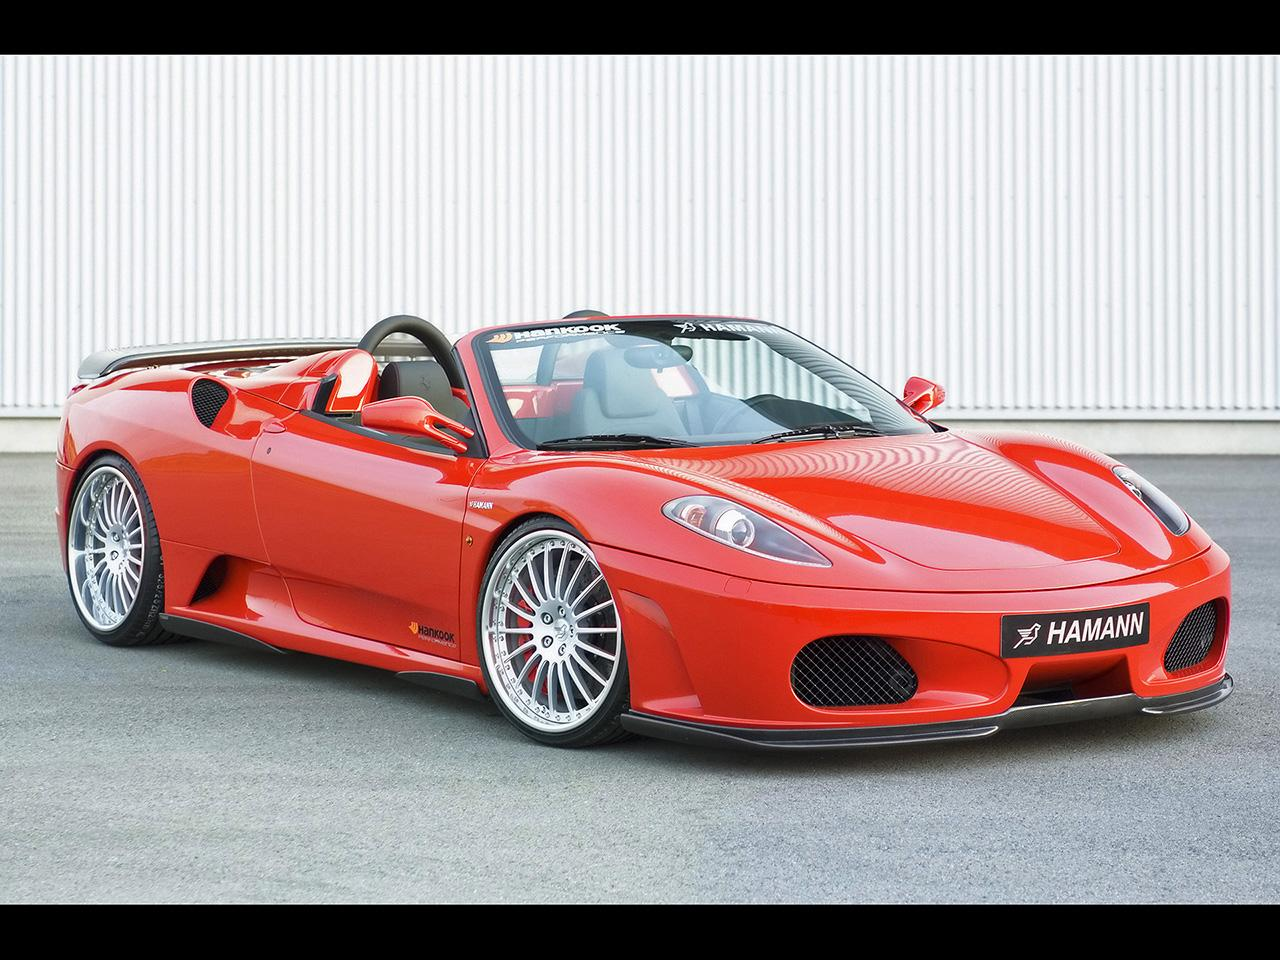 Pictures of ferrari f430